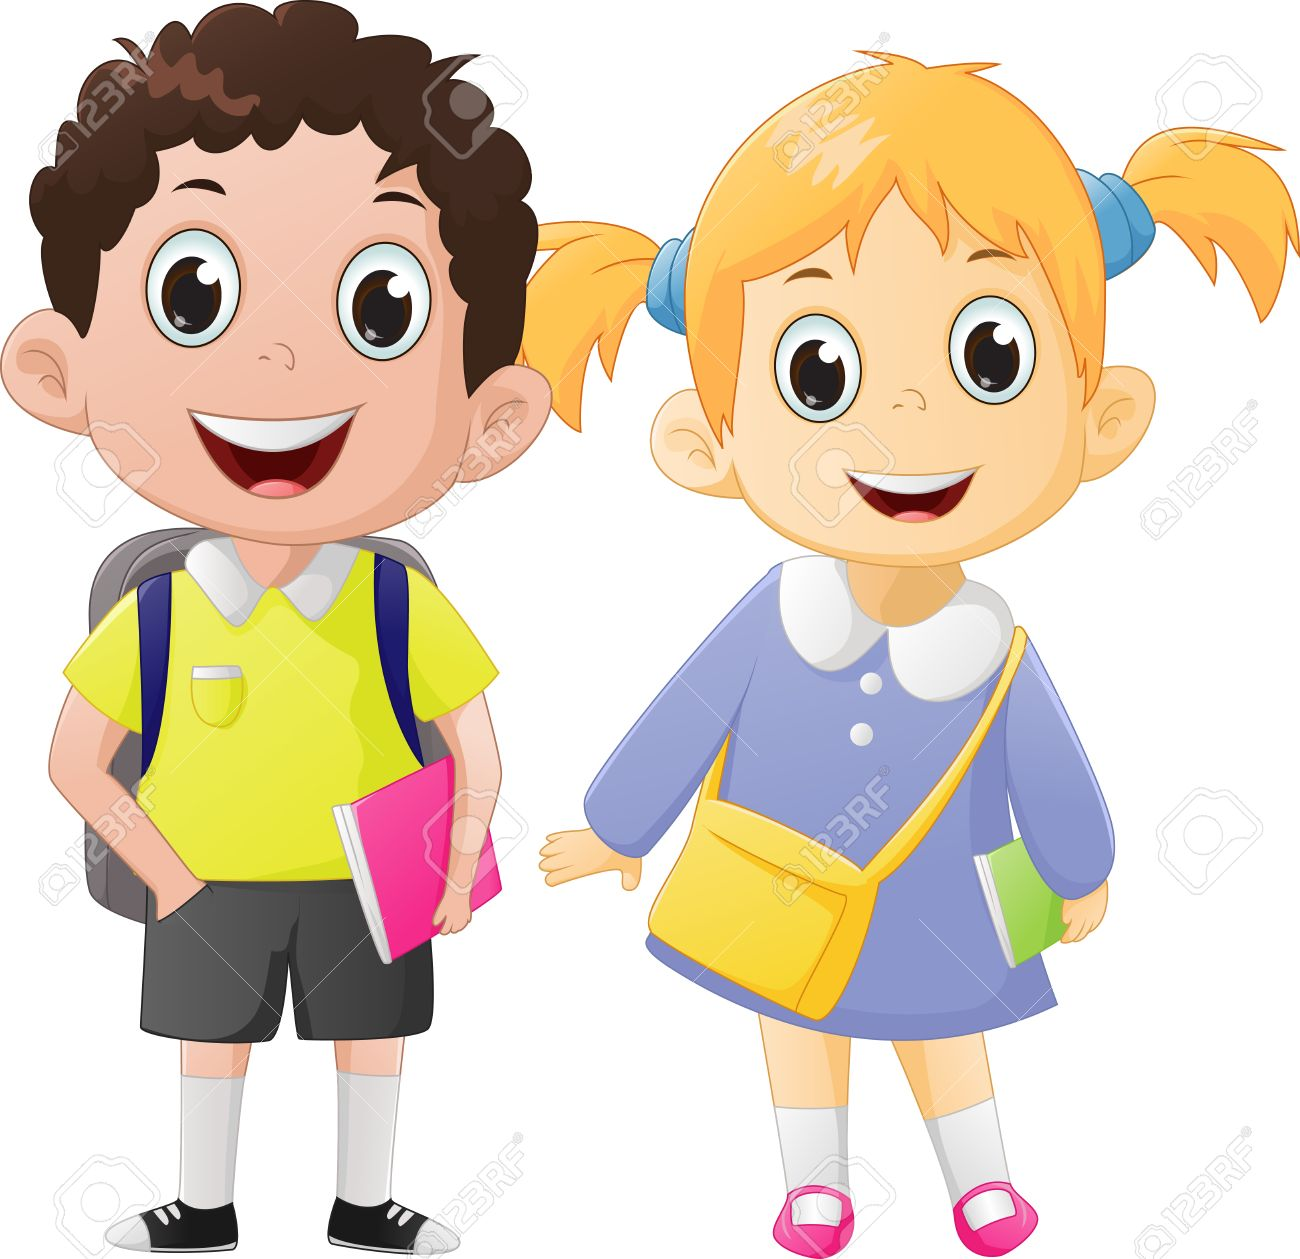 School boy and girl clipart 8 » Clipart Station.